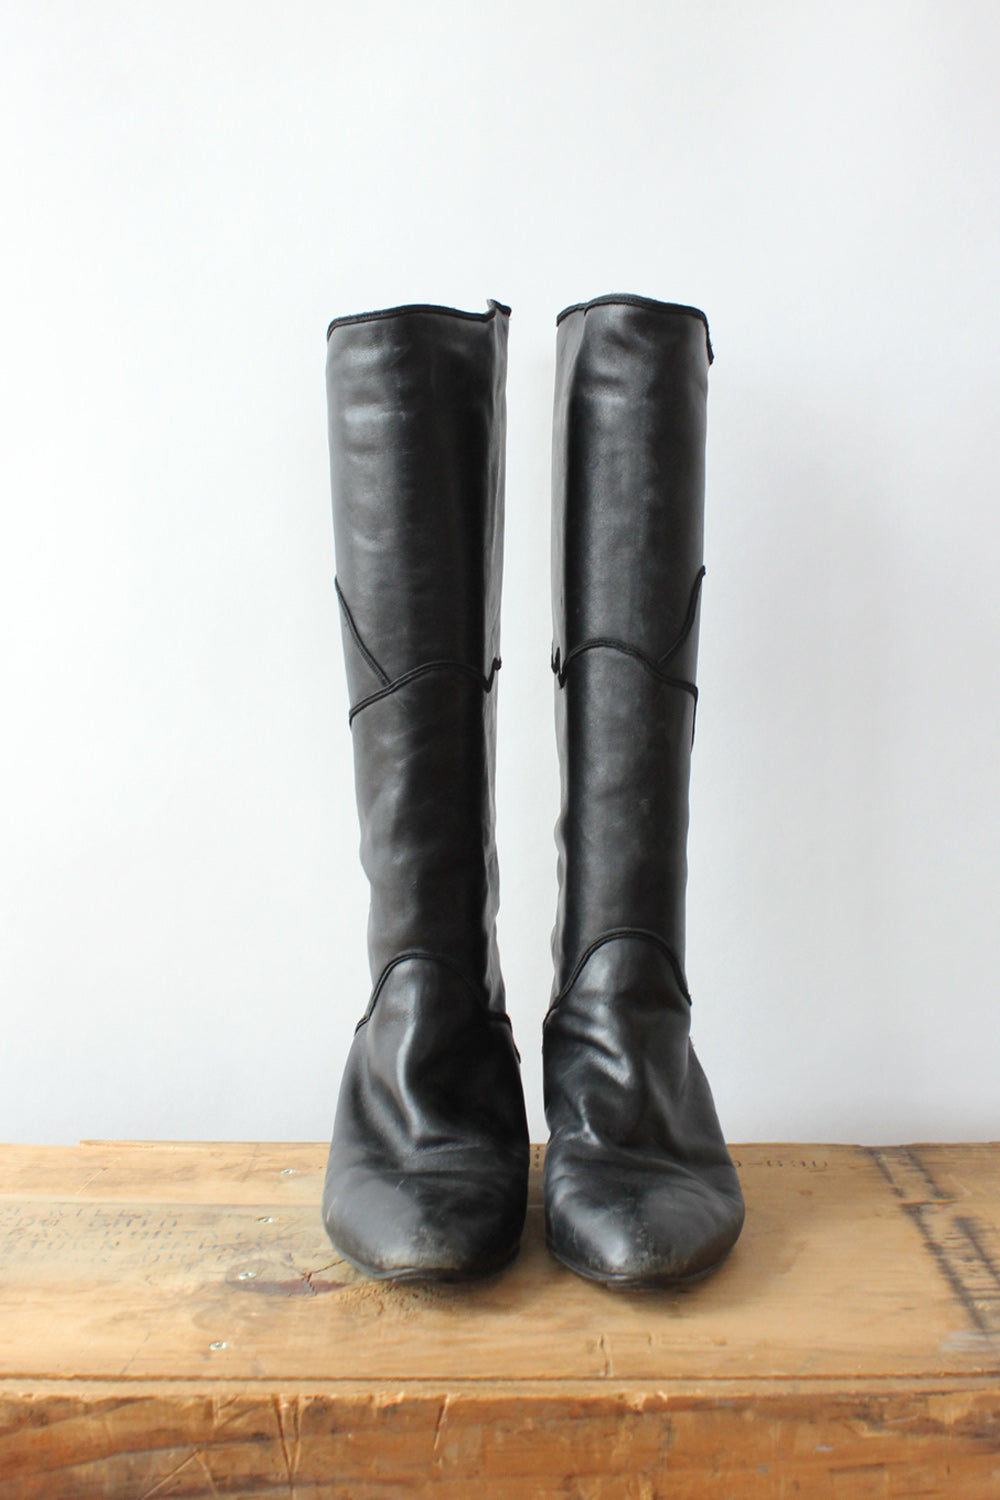 Italian Leather Scallop Boots 8-8.5